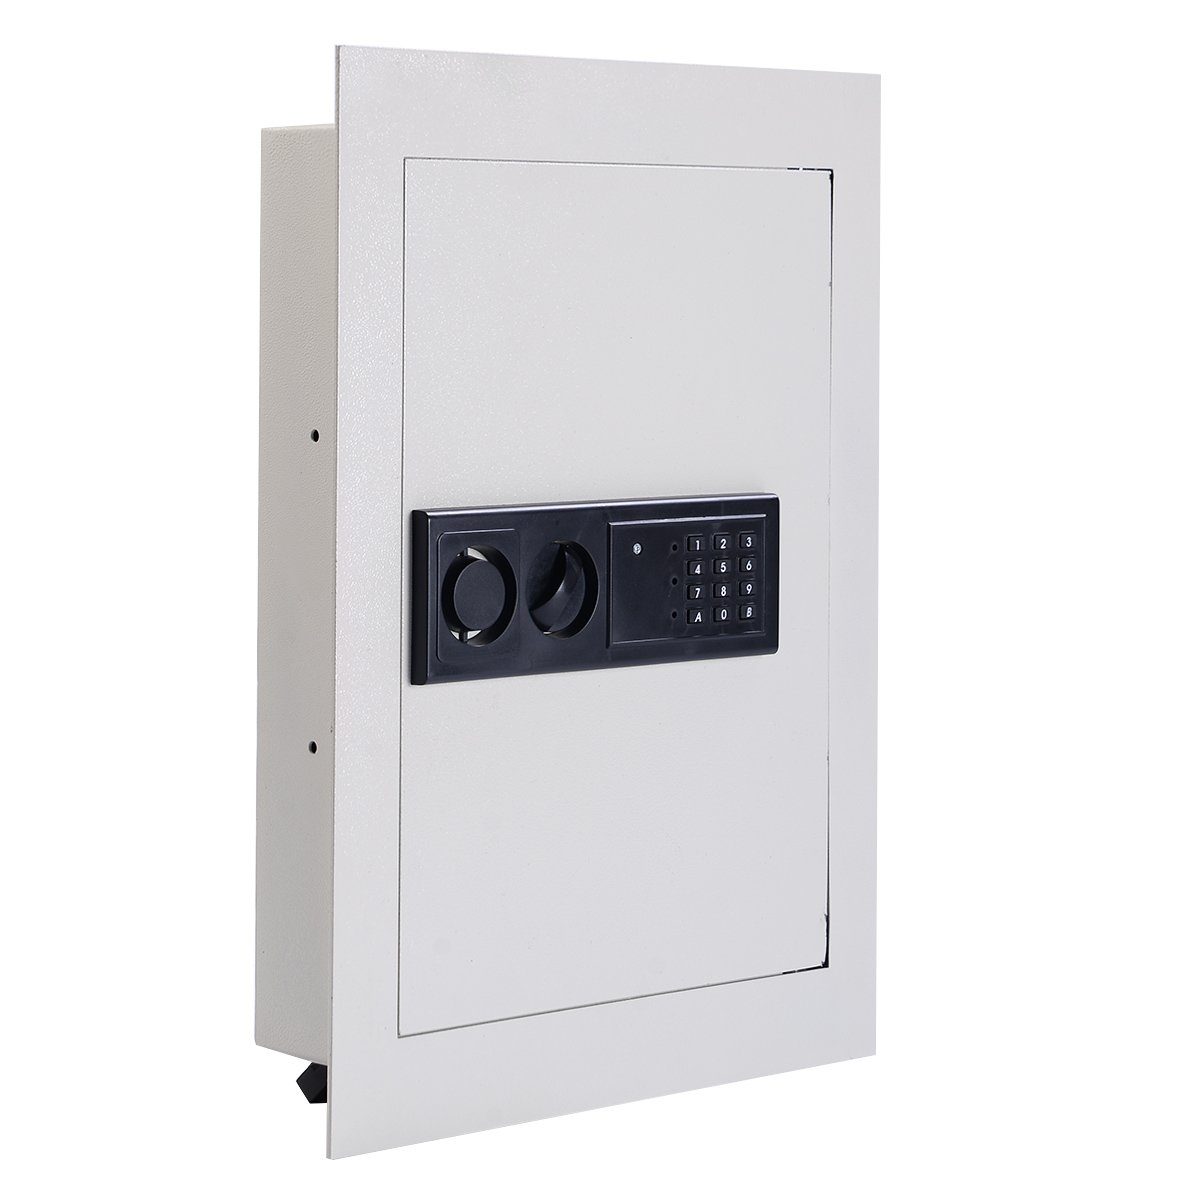 Giantex Electronic Wall Hidden Safe Security Box.83 CF Built-In Wall Electronic Flat Security Safety Cabinet by Giantex (Image #1)